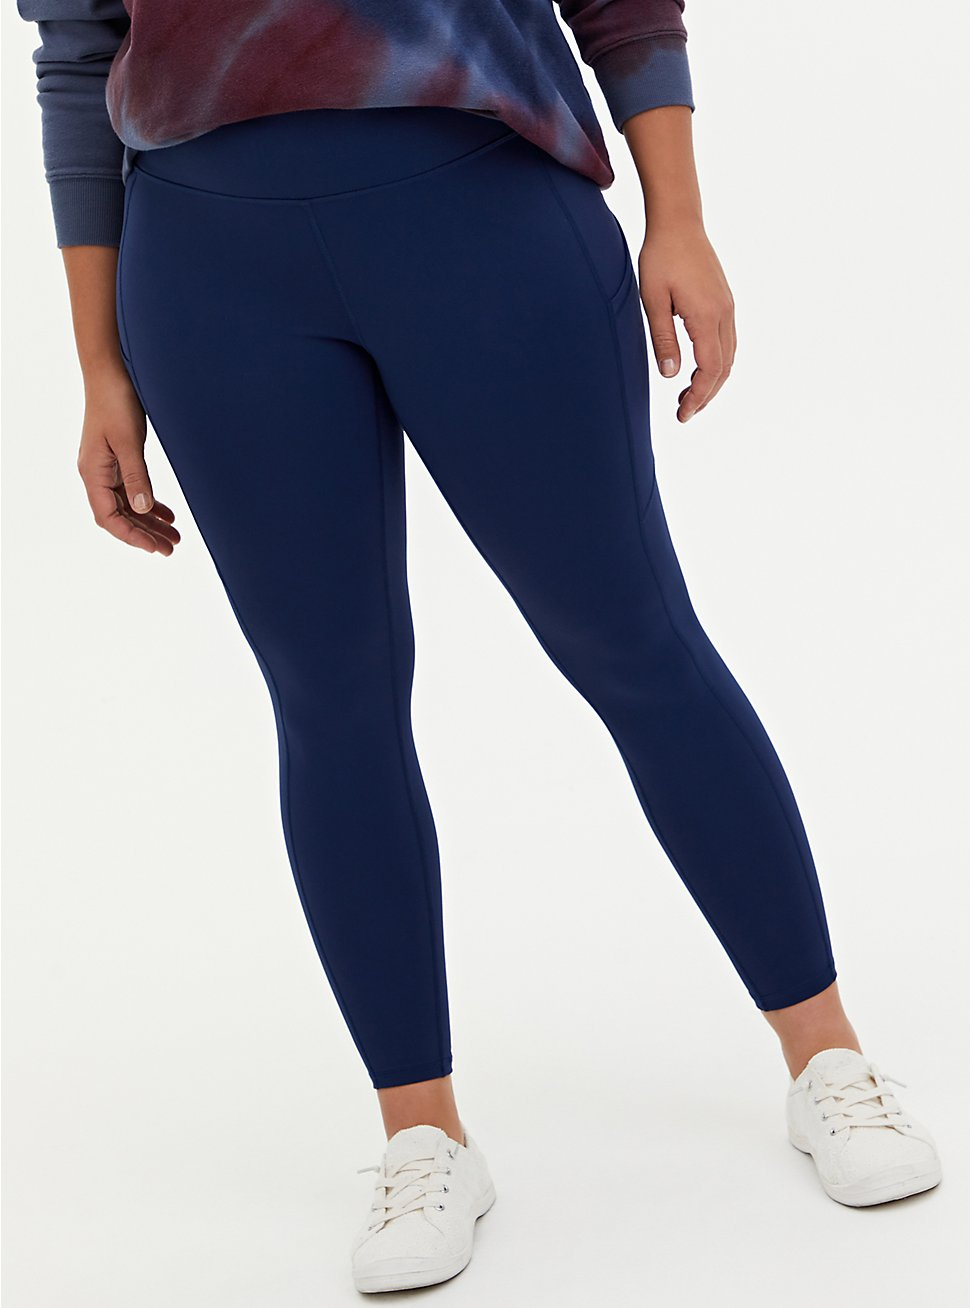 Navy Wicking Active Legging with Pockets, NAVY, hi-res